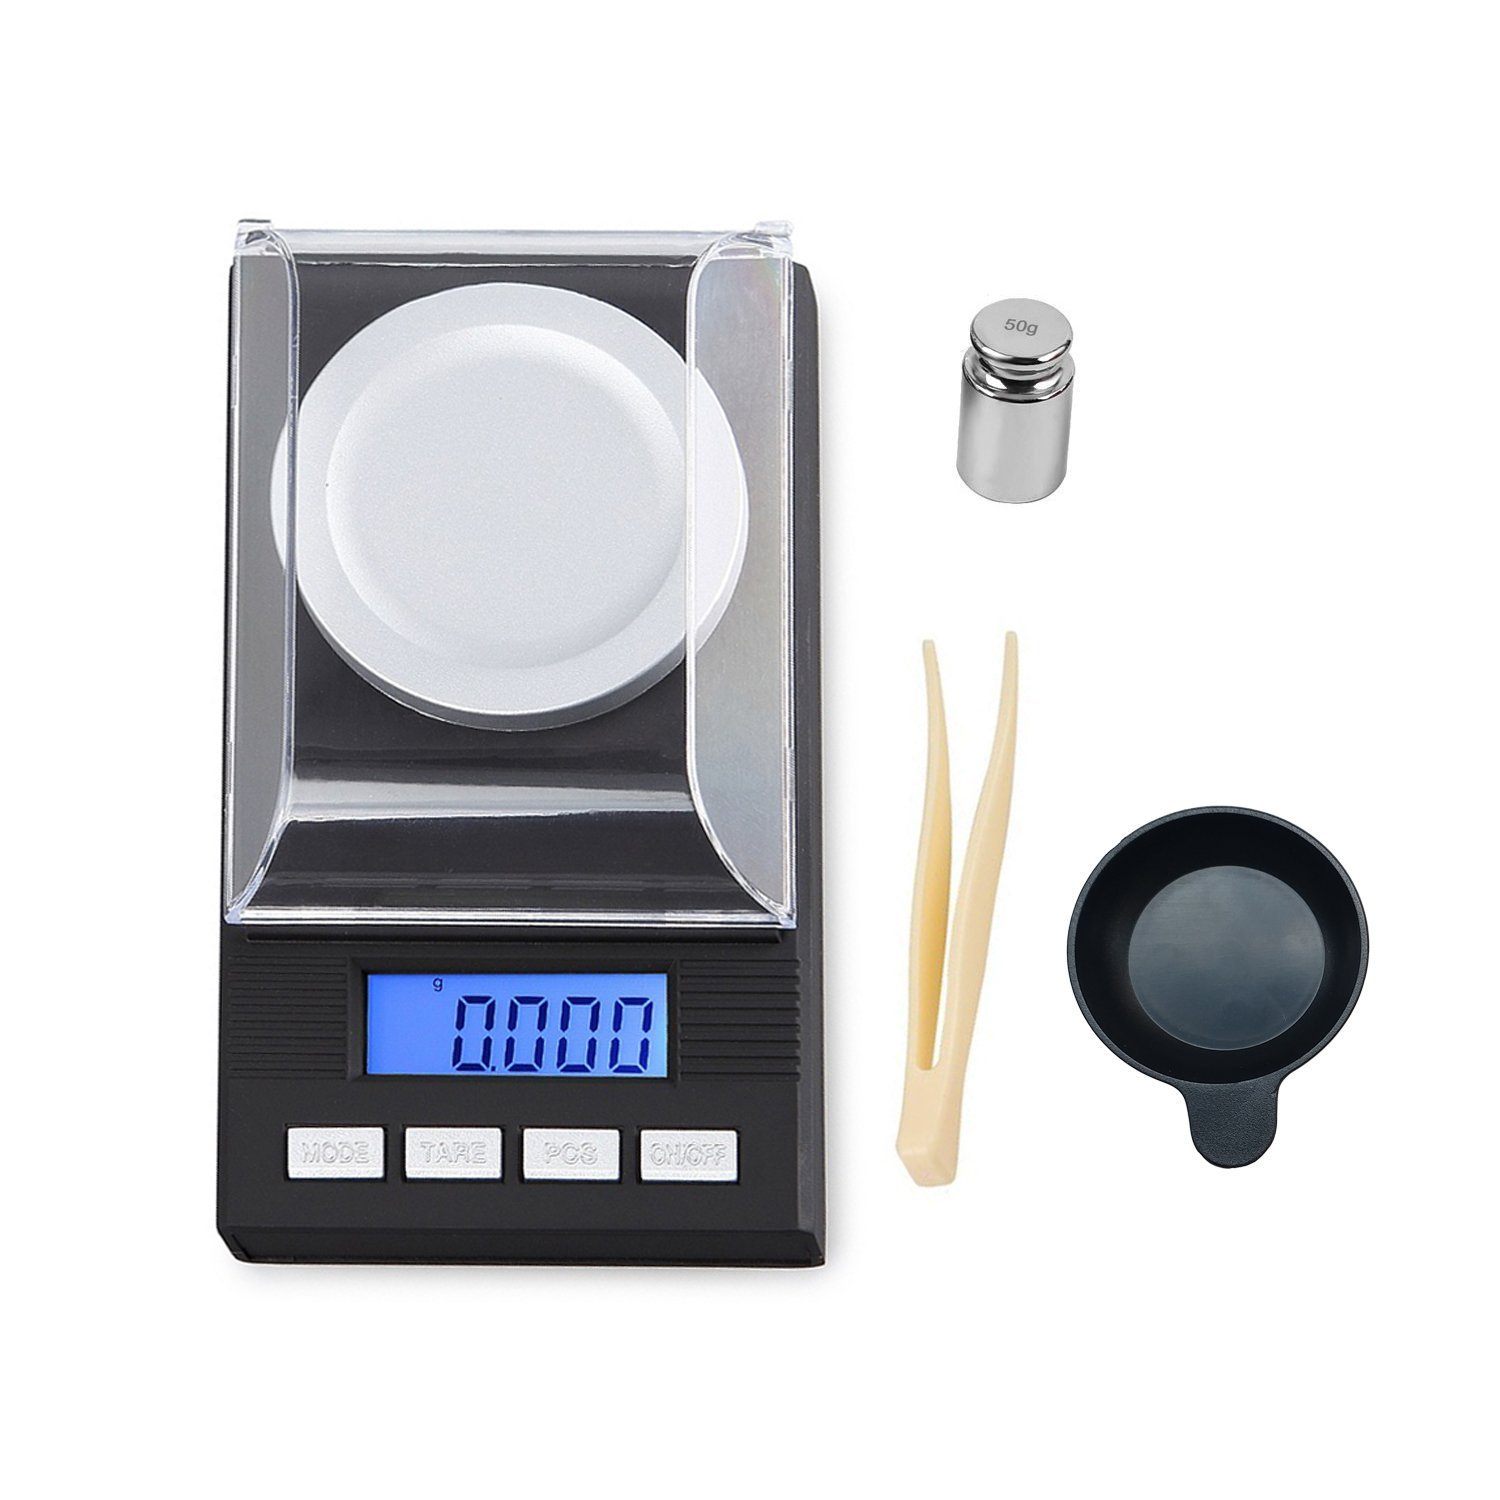 High Precision Digital Milligram Scale 50g/1.7637oz Capacity, 0.001g/0.0001oz Division, Portable Jewelry Scale Digital Weight with Calibration Weights Tweezers and Weighing Pans